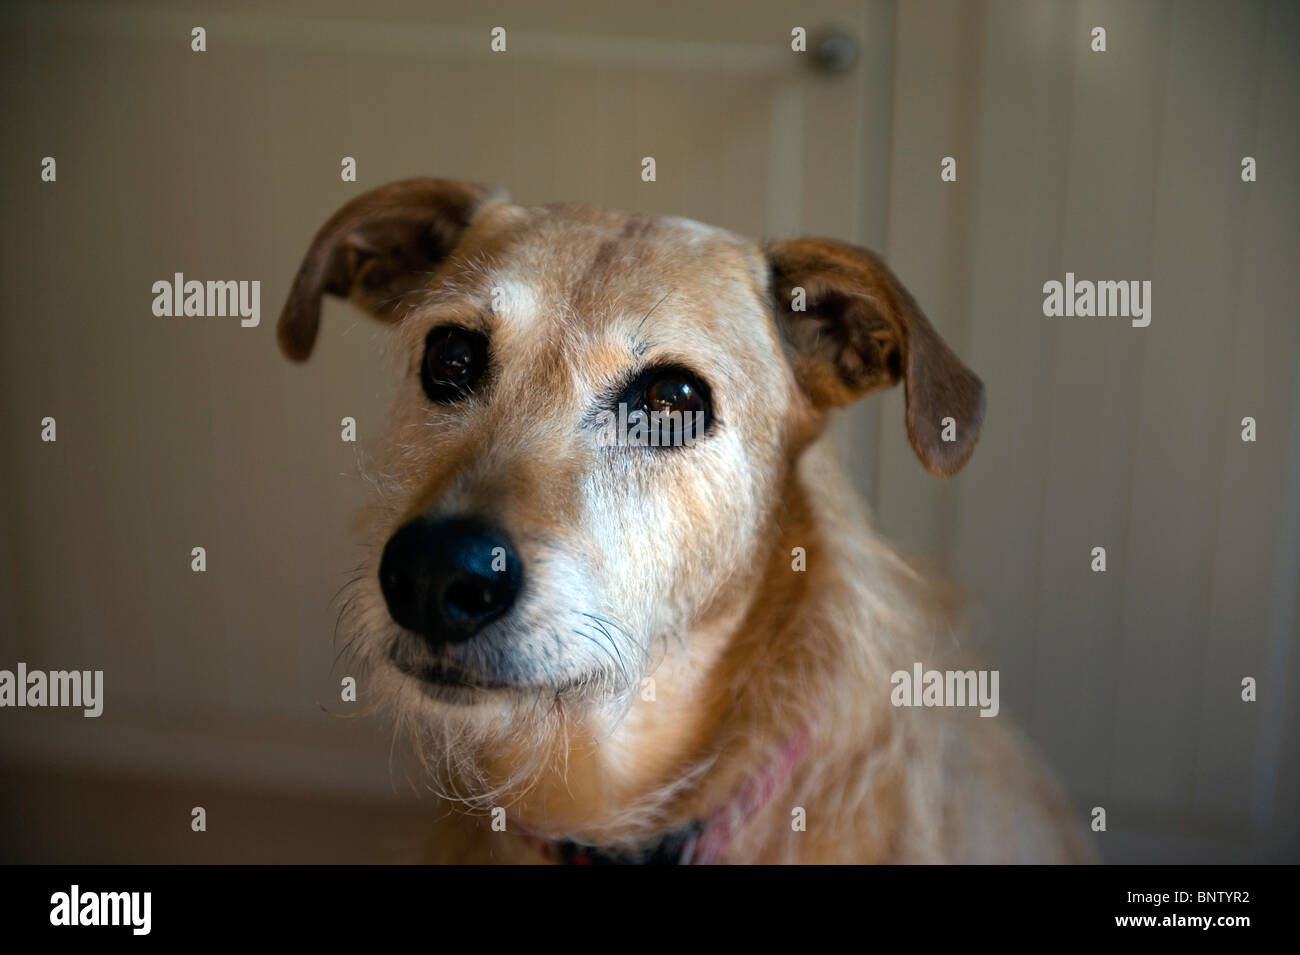 Lurcher breed of dog. - Stock Image